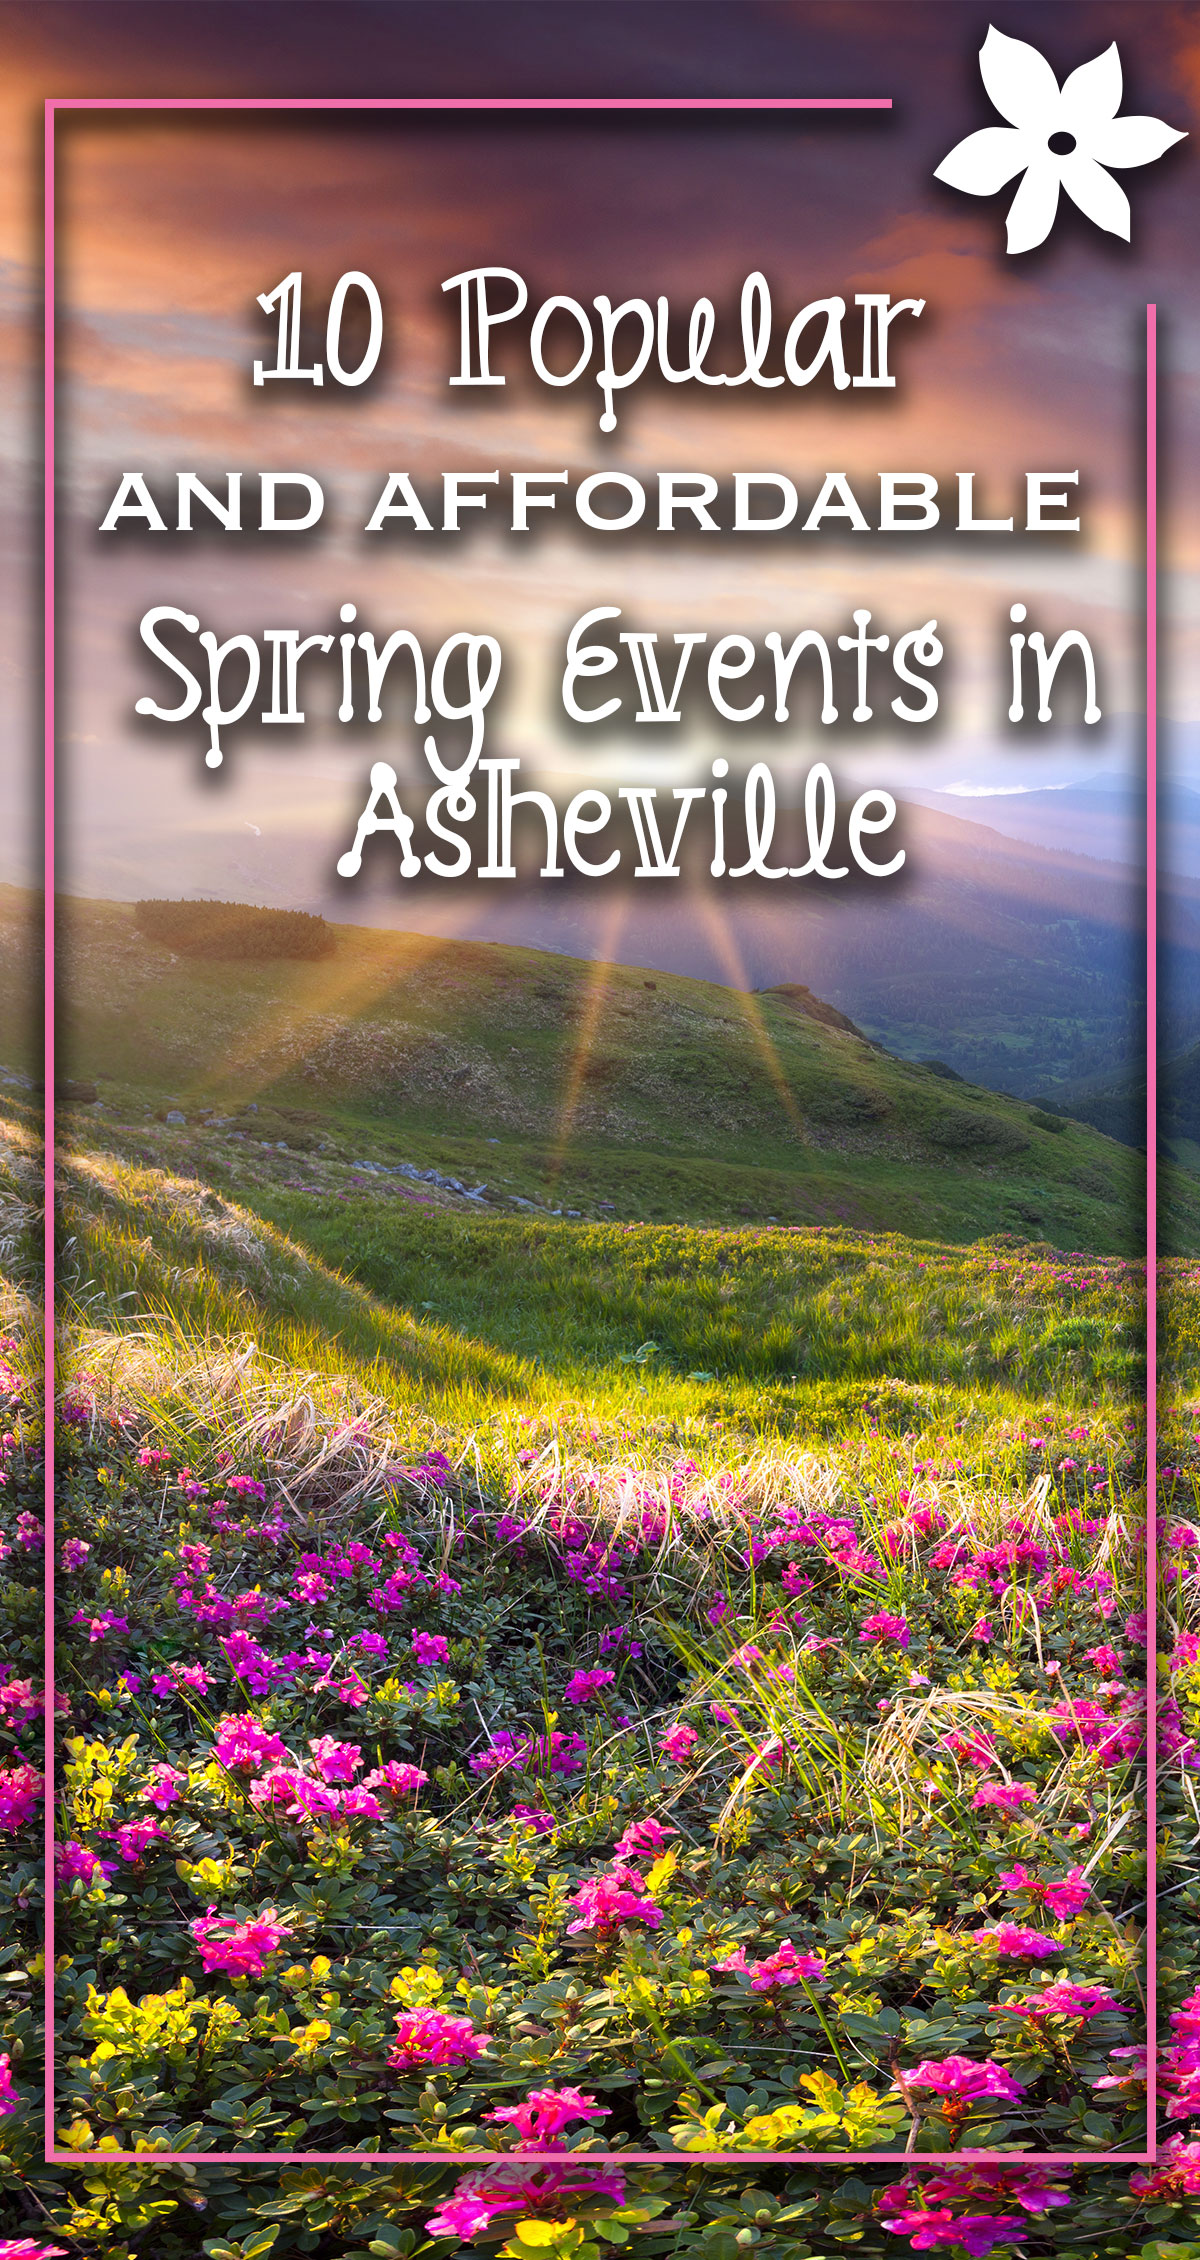 10 popular and affordable spring events in asheville for Lake lure arts crafts festival